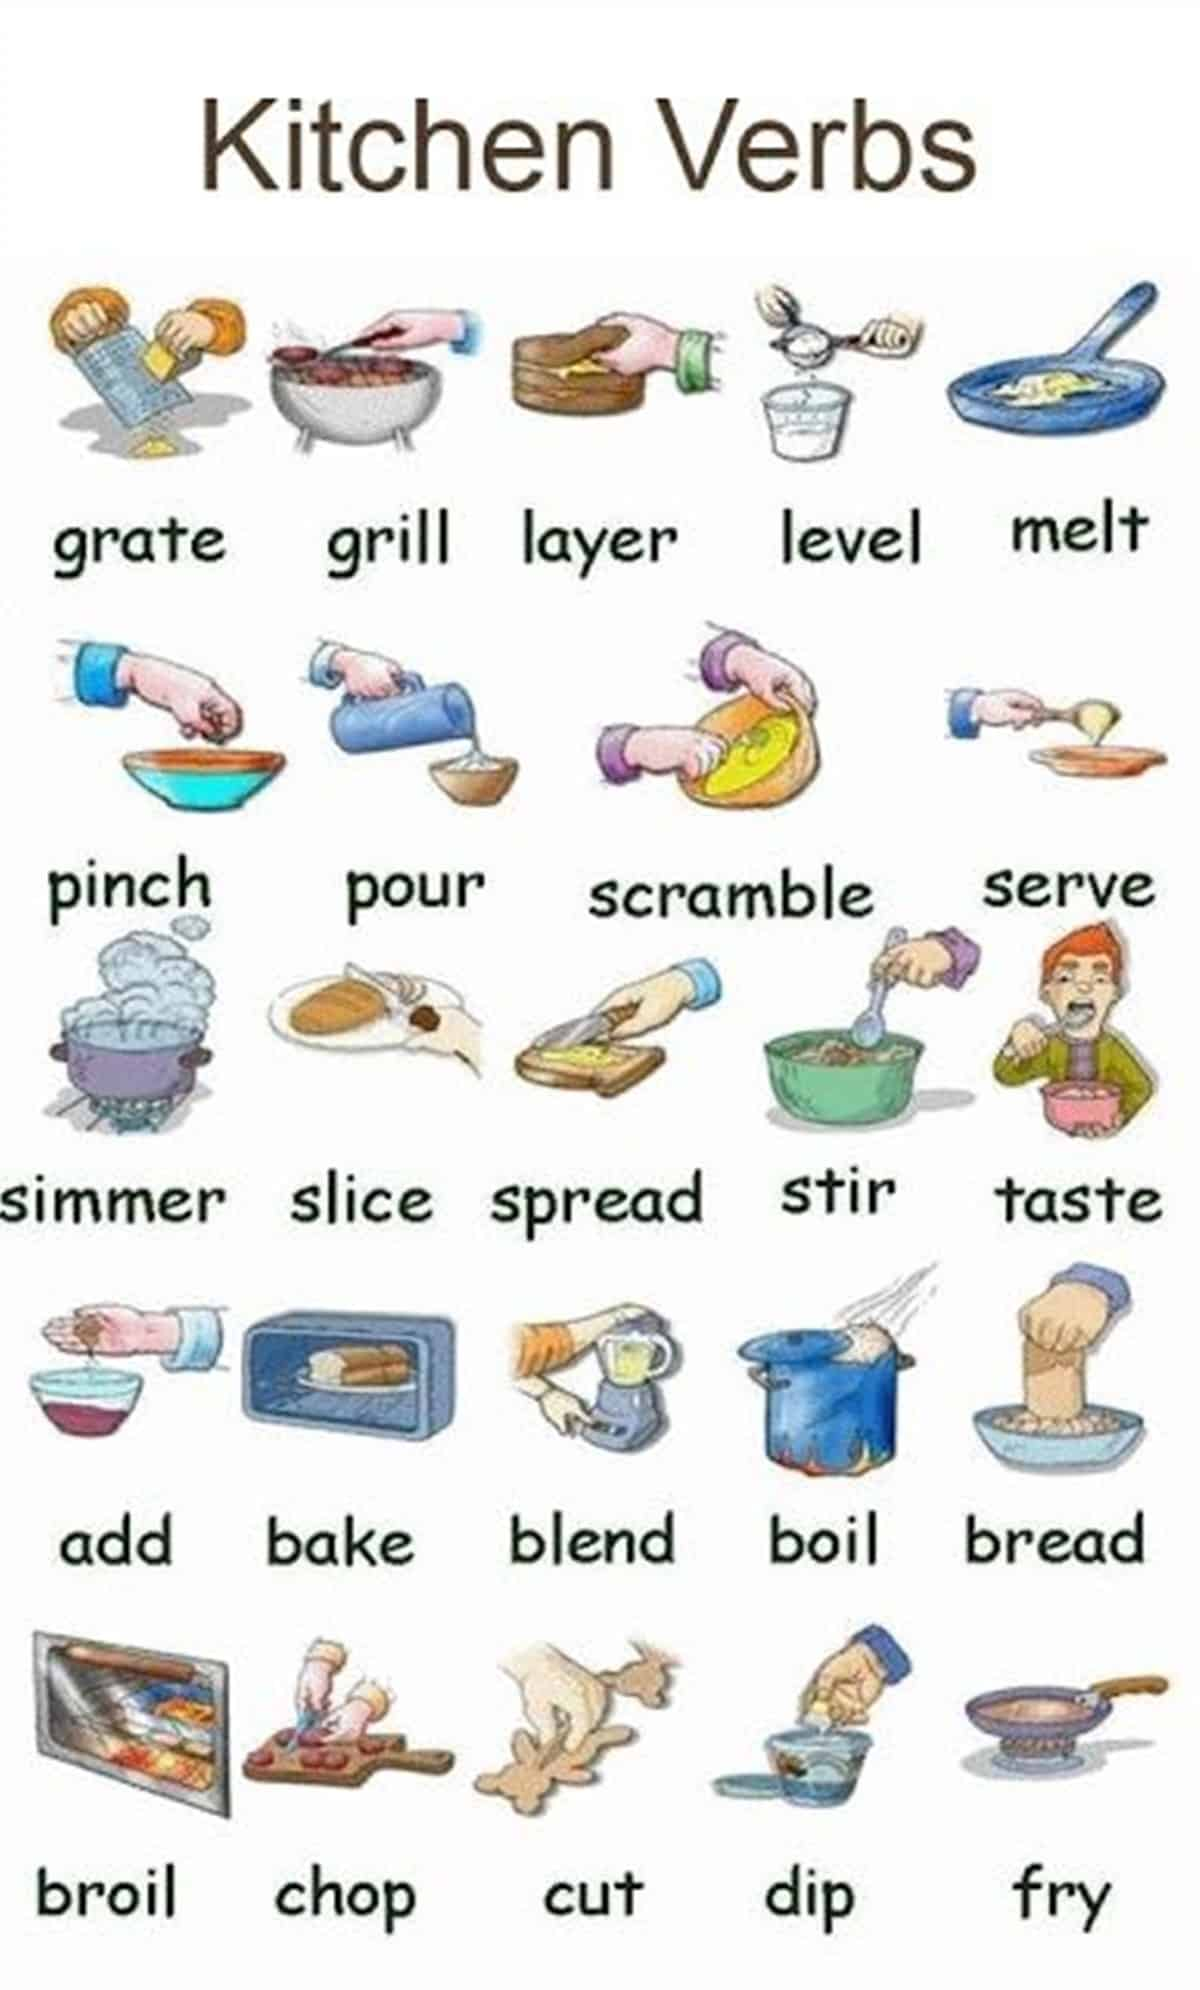 Visual Dictionary: Common Verbs in English